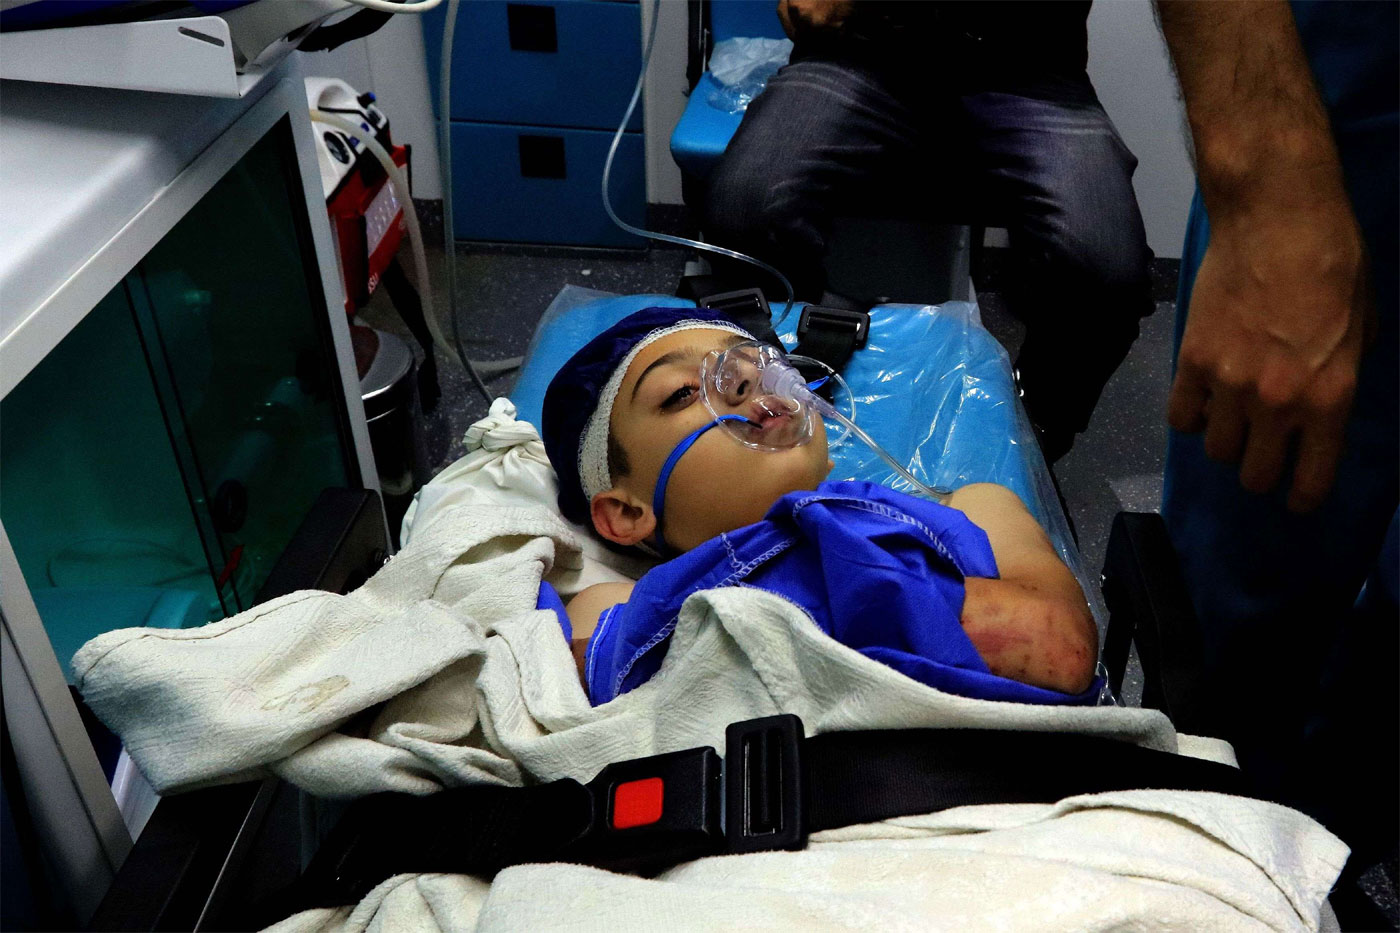 A wounded pupil lays on a stretcher at a hospital after a bus accident near the Dead Sea in Jordan